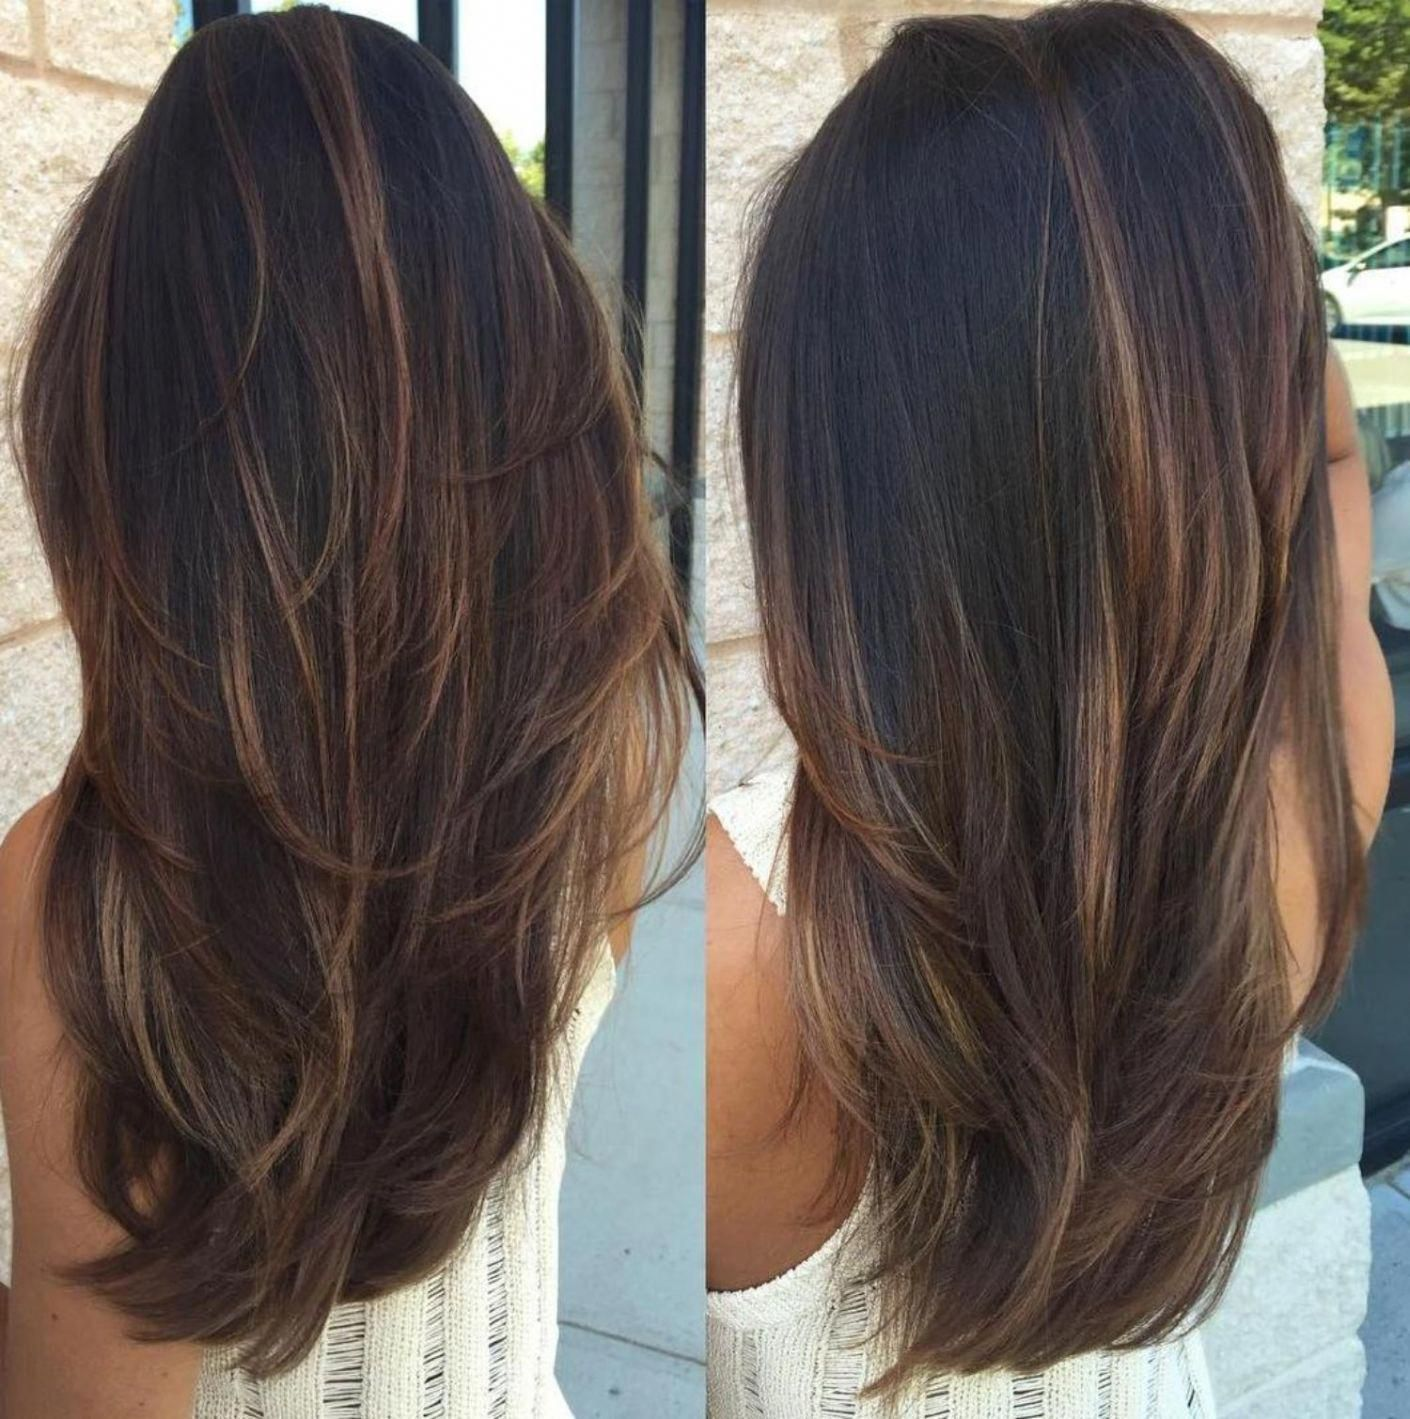 36+ Long layered black hairstyles ideas